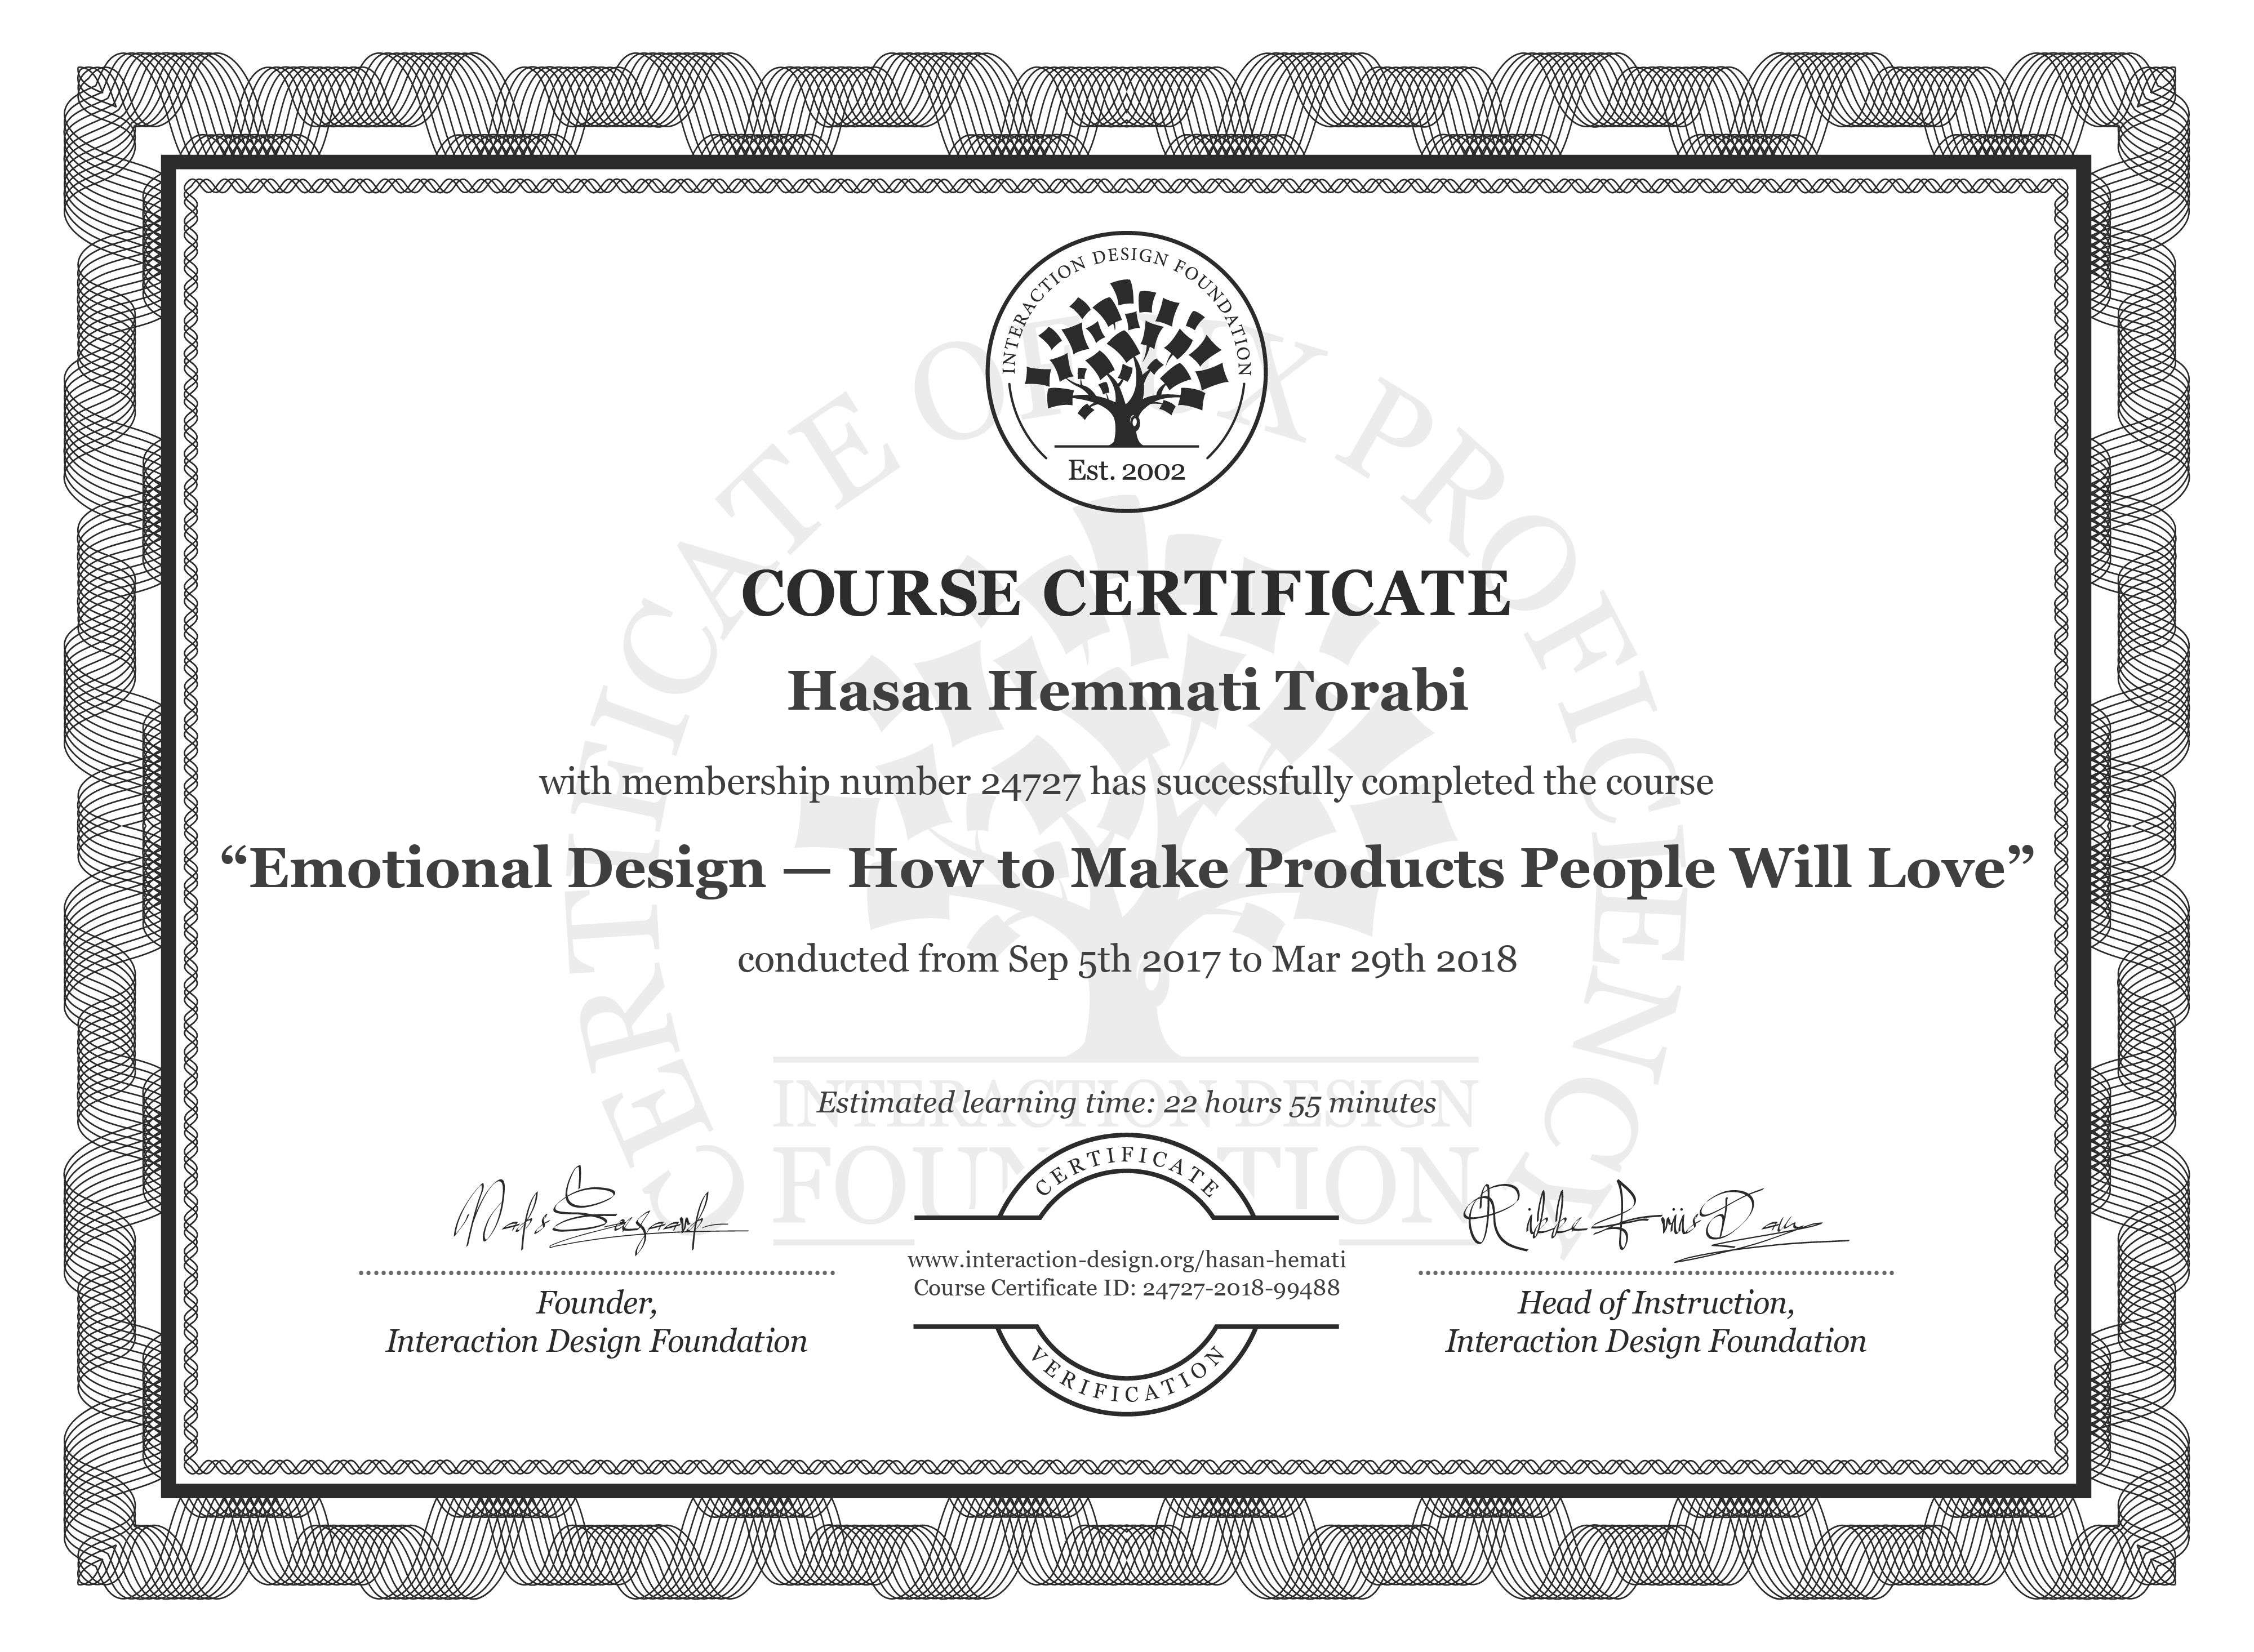 Hasan Hemmati Torabi's Course Certificate: Emotional Design — How to Make Products People Will Love